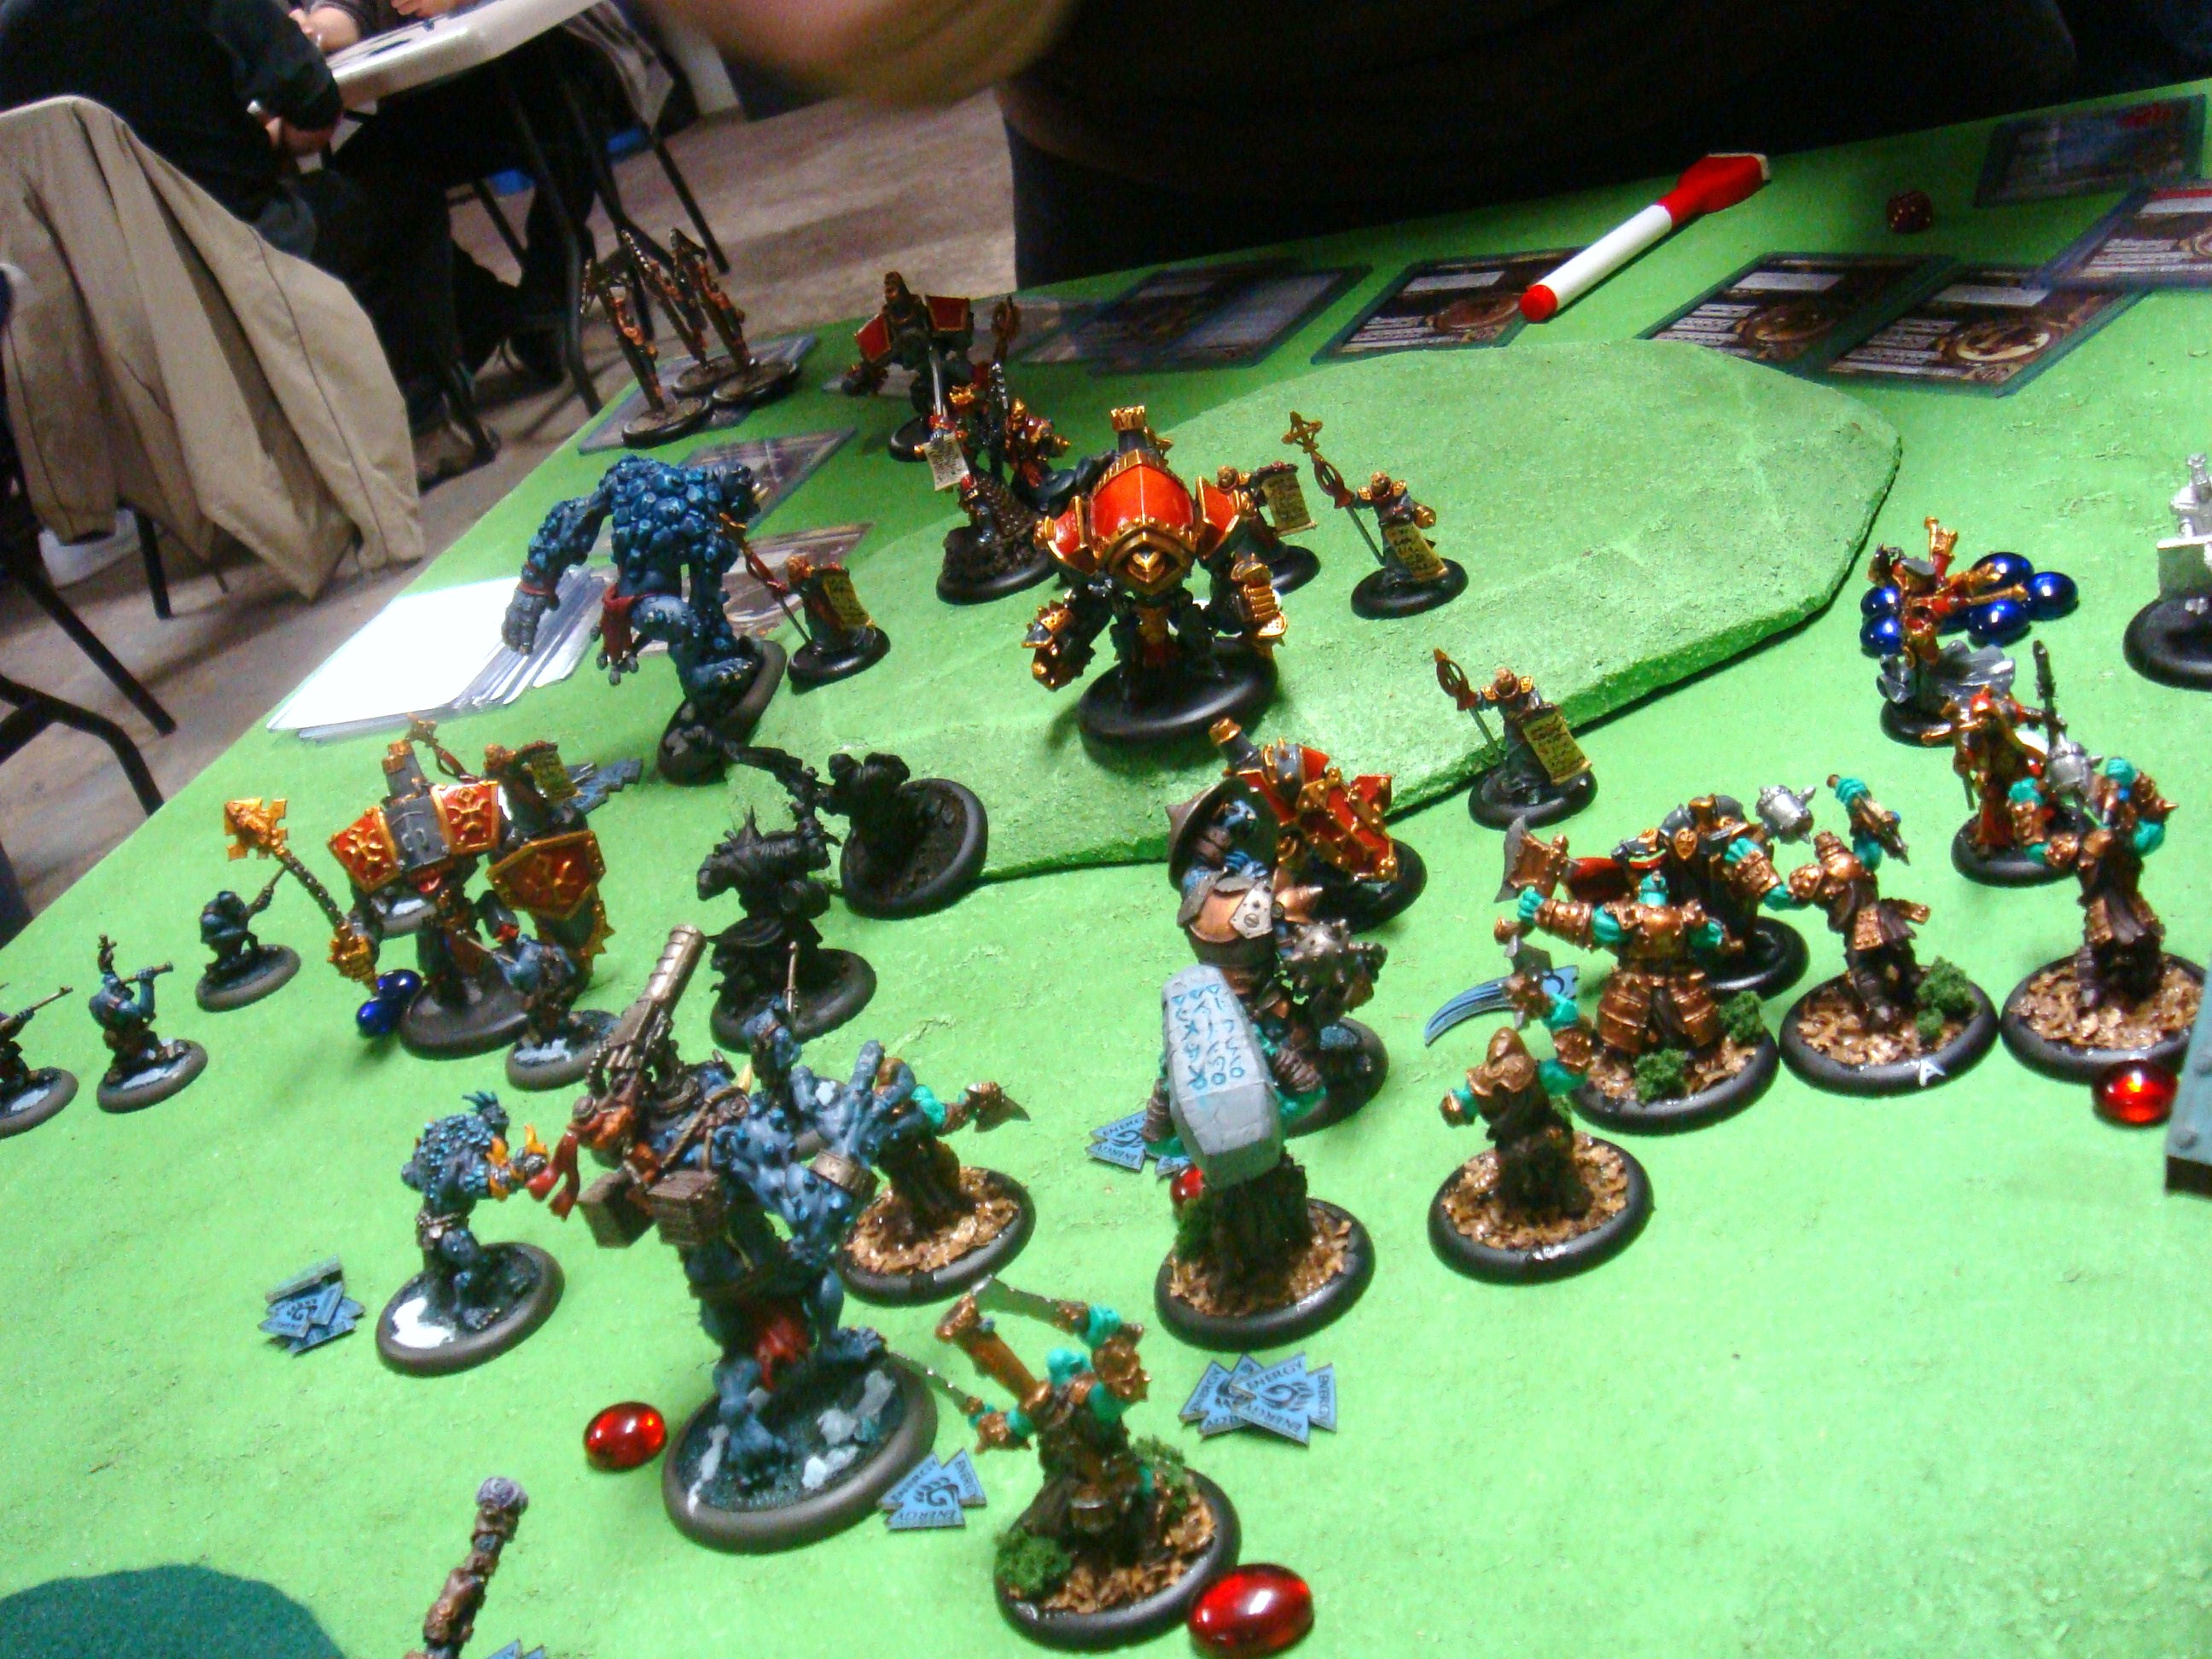 Warmachine Hordes Protectorate of Menoth Trolls 150pt Battle Report - Part 4